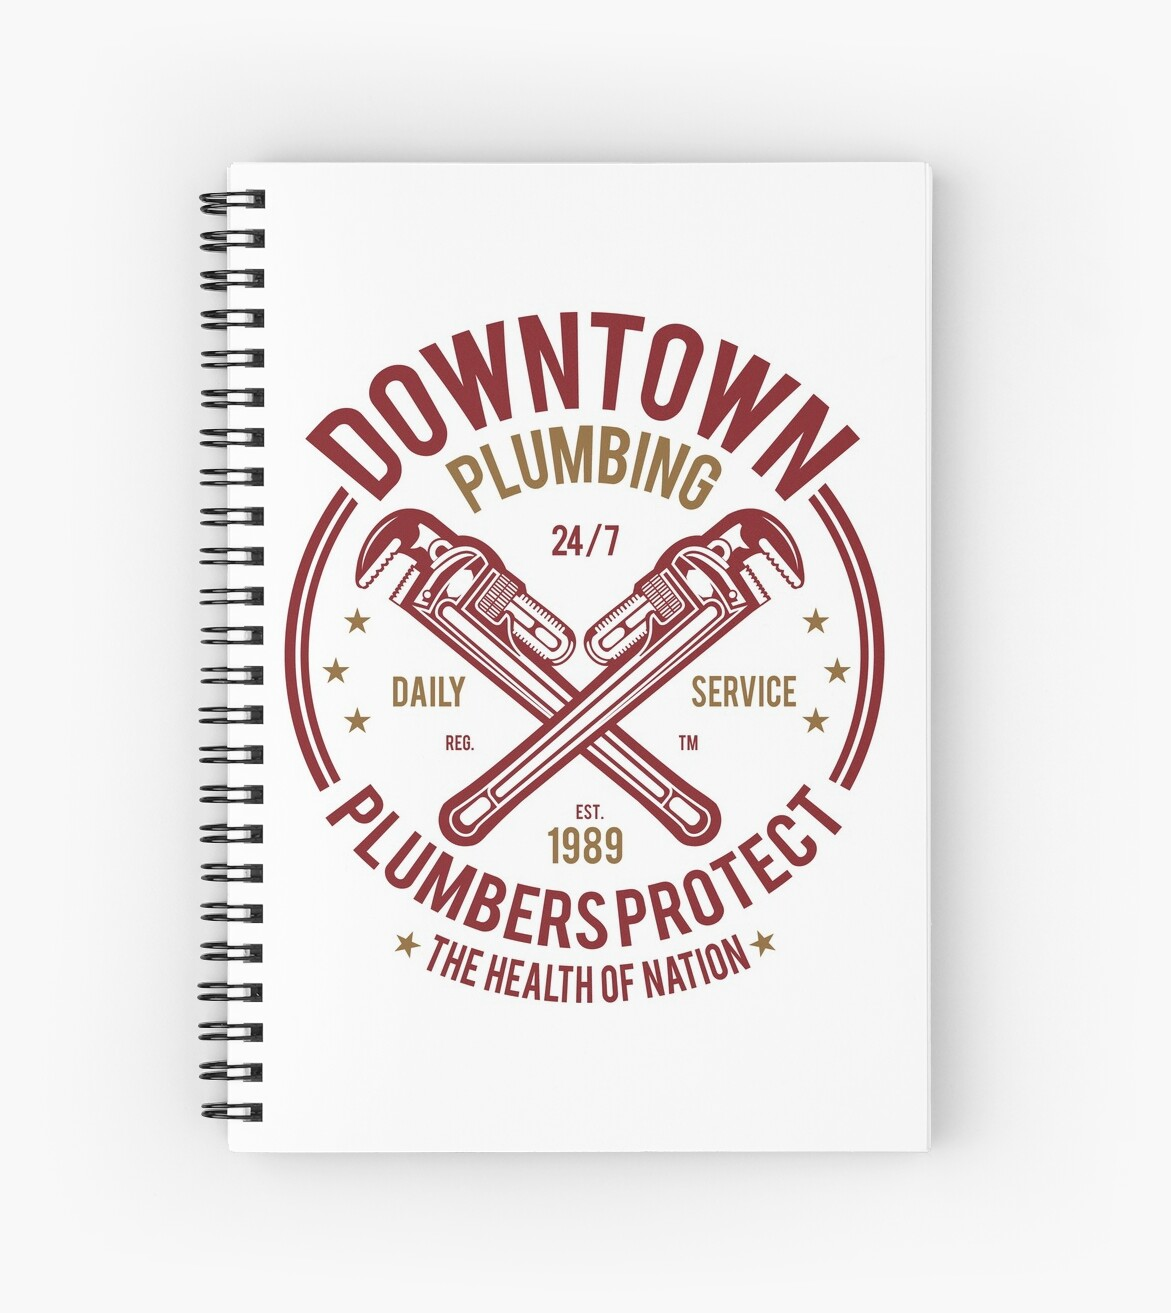 Downtown Plumbing - 24/7 - Plumbers Protect -  The Heath Of Nation - by flipper42